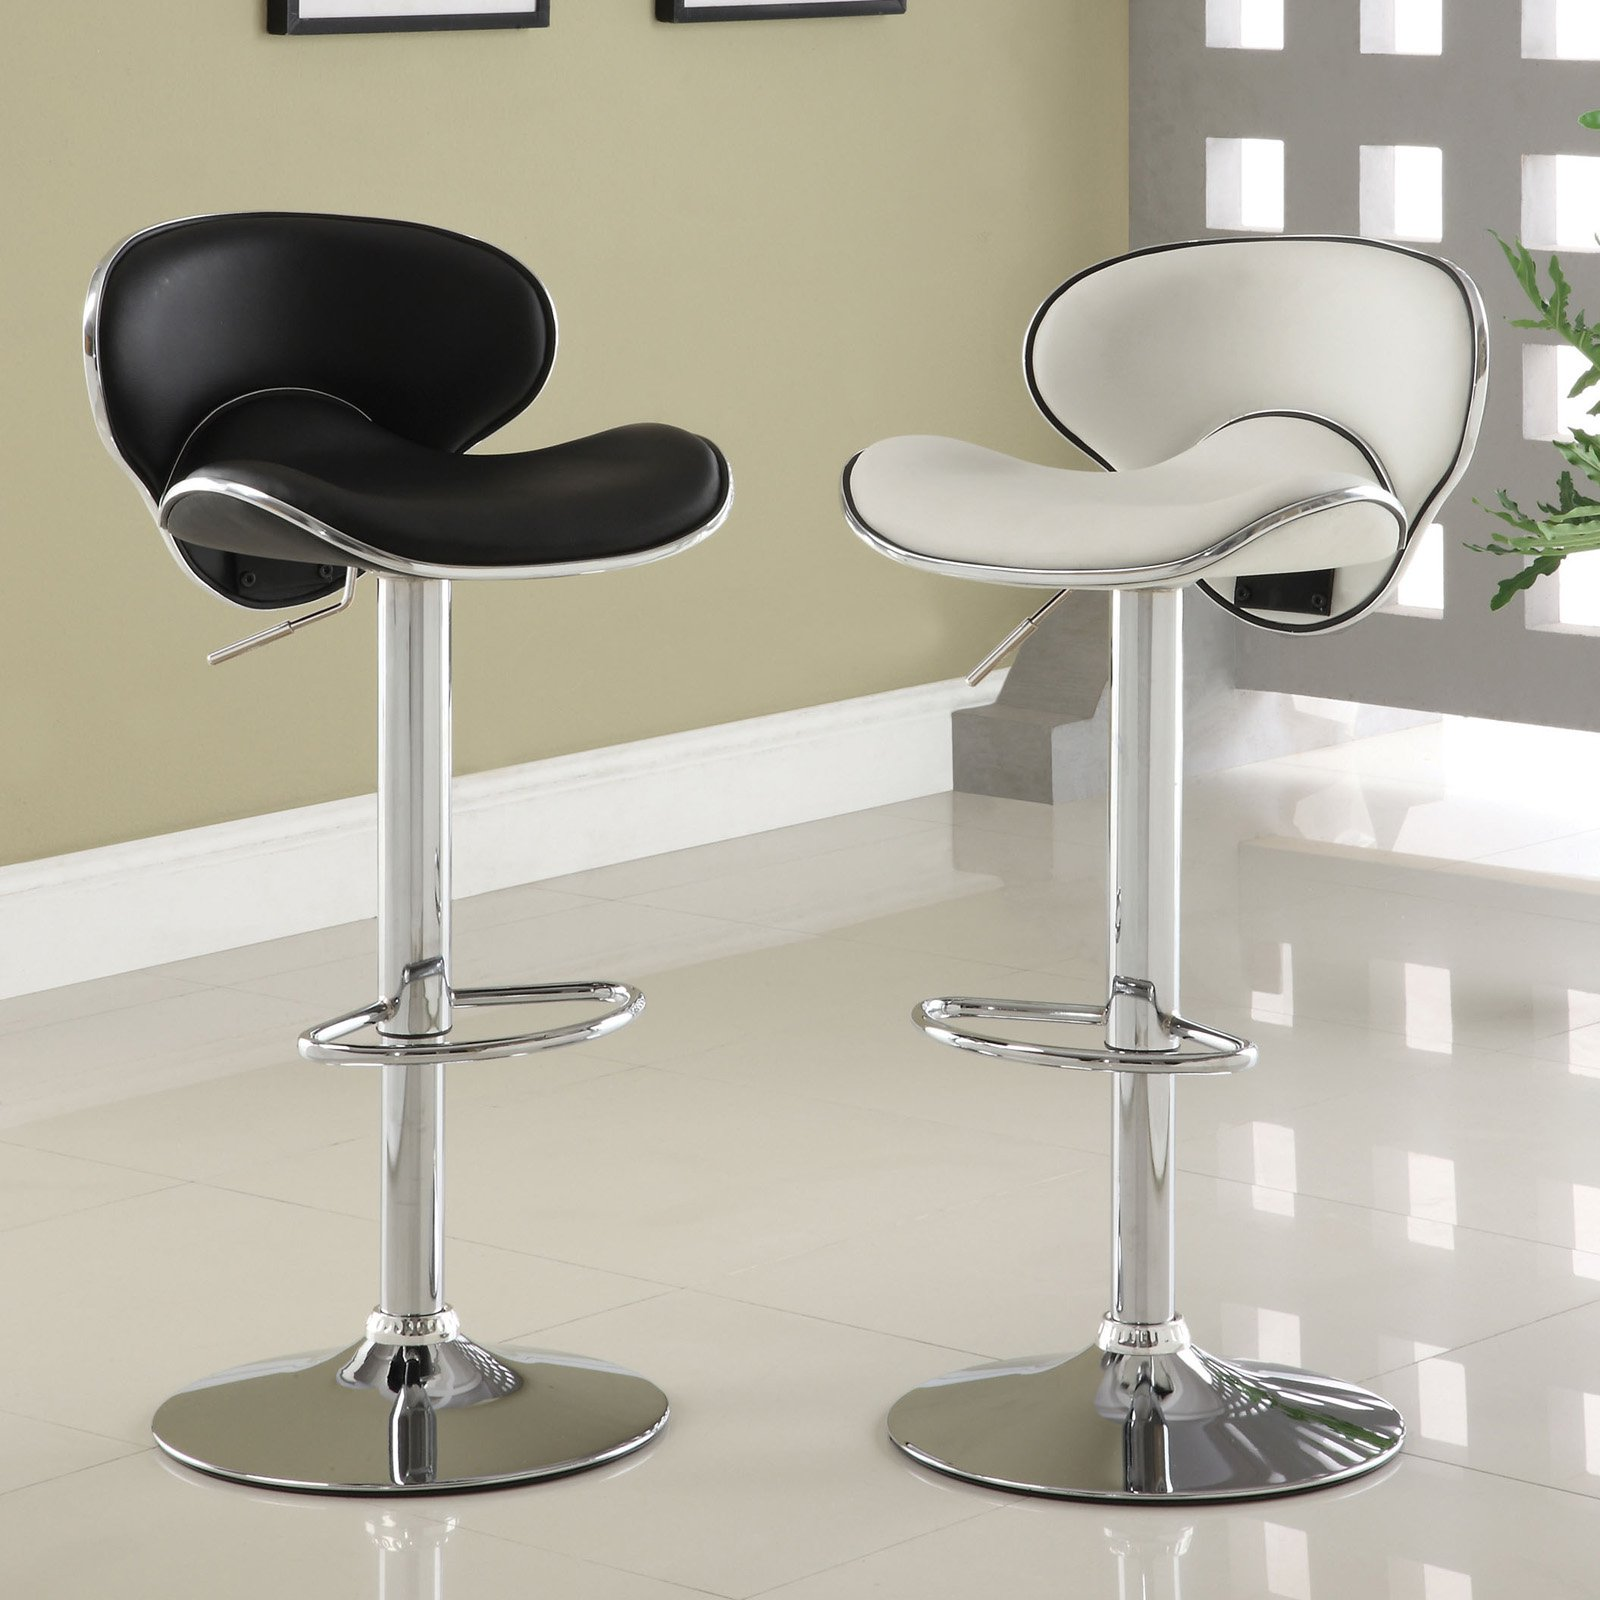 Furniture of America Ashtra Adjustable Height Bar Chair